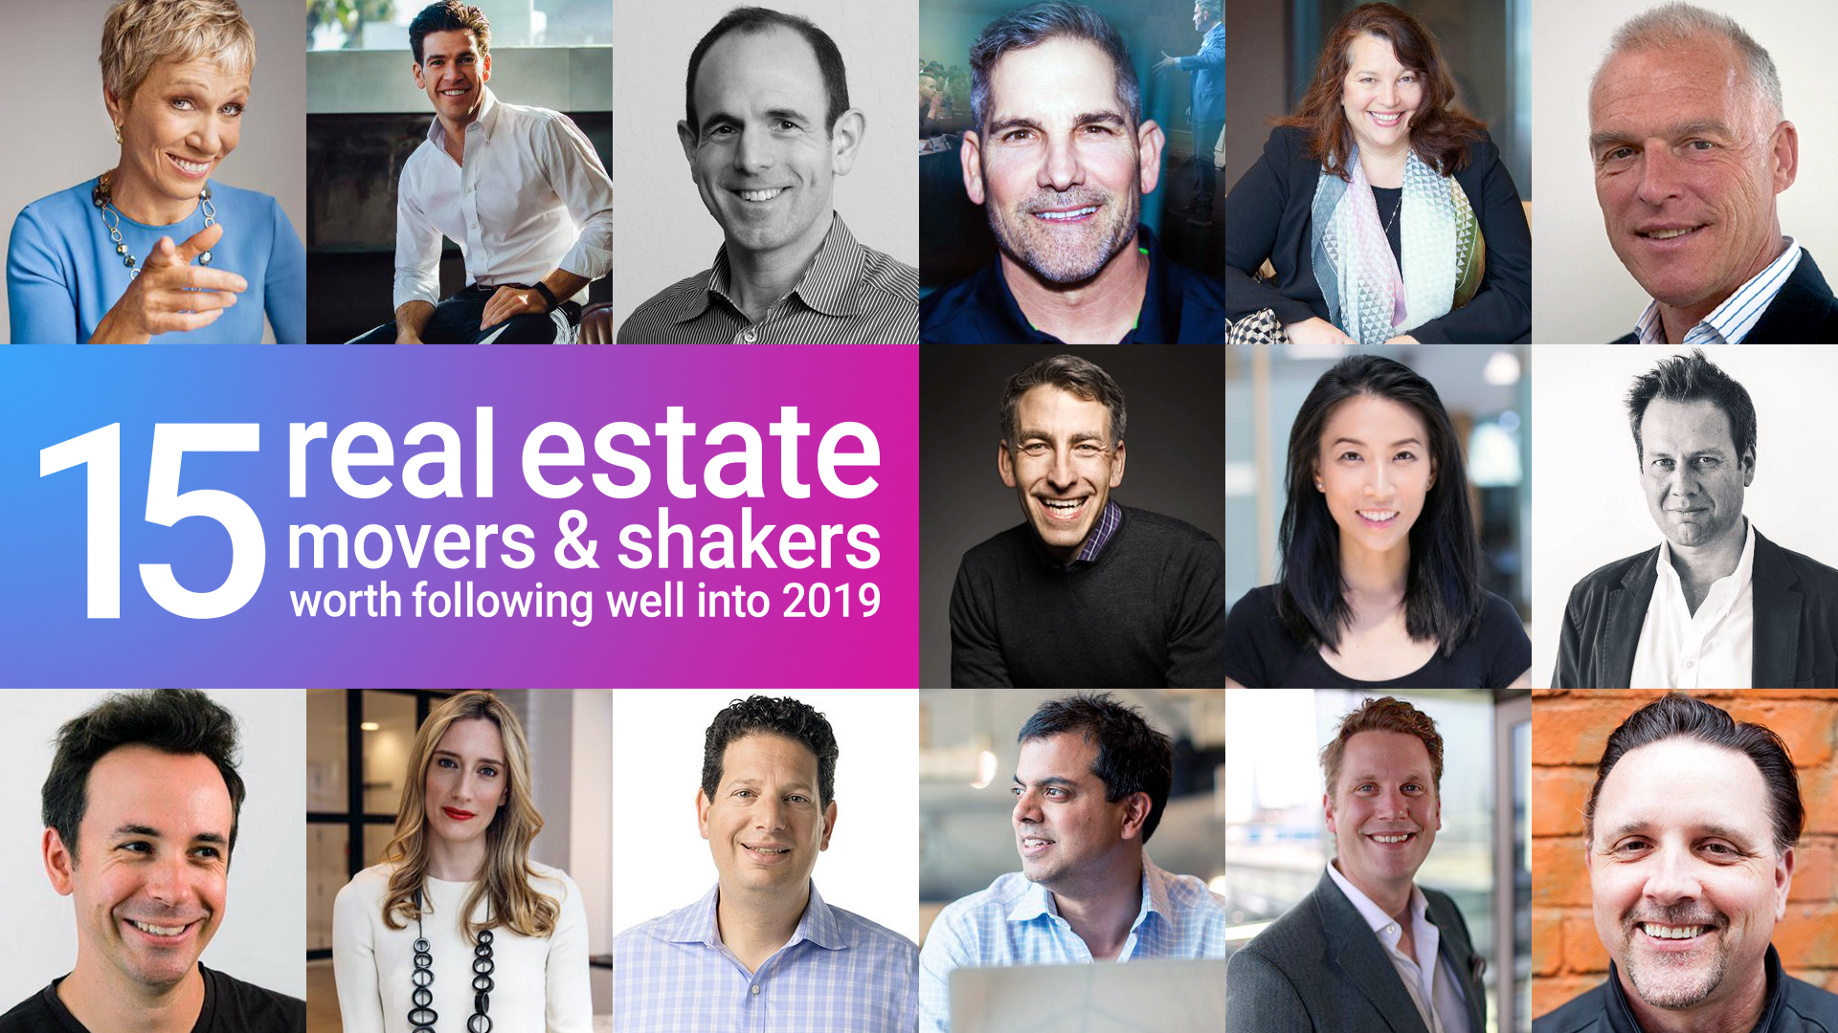 15 real estate movers 'n shakers worth following well into 2019